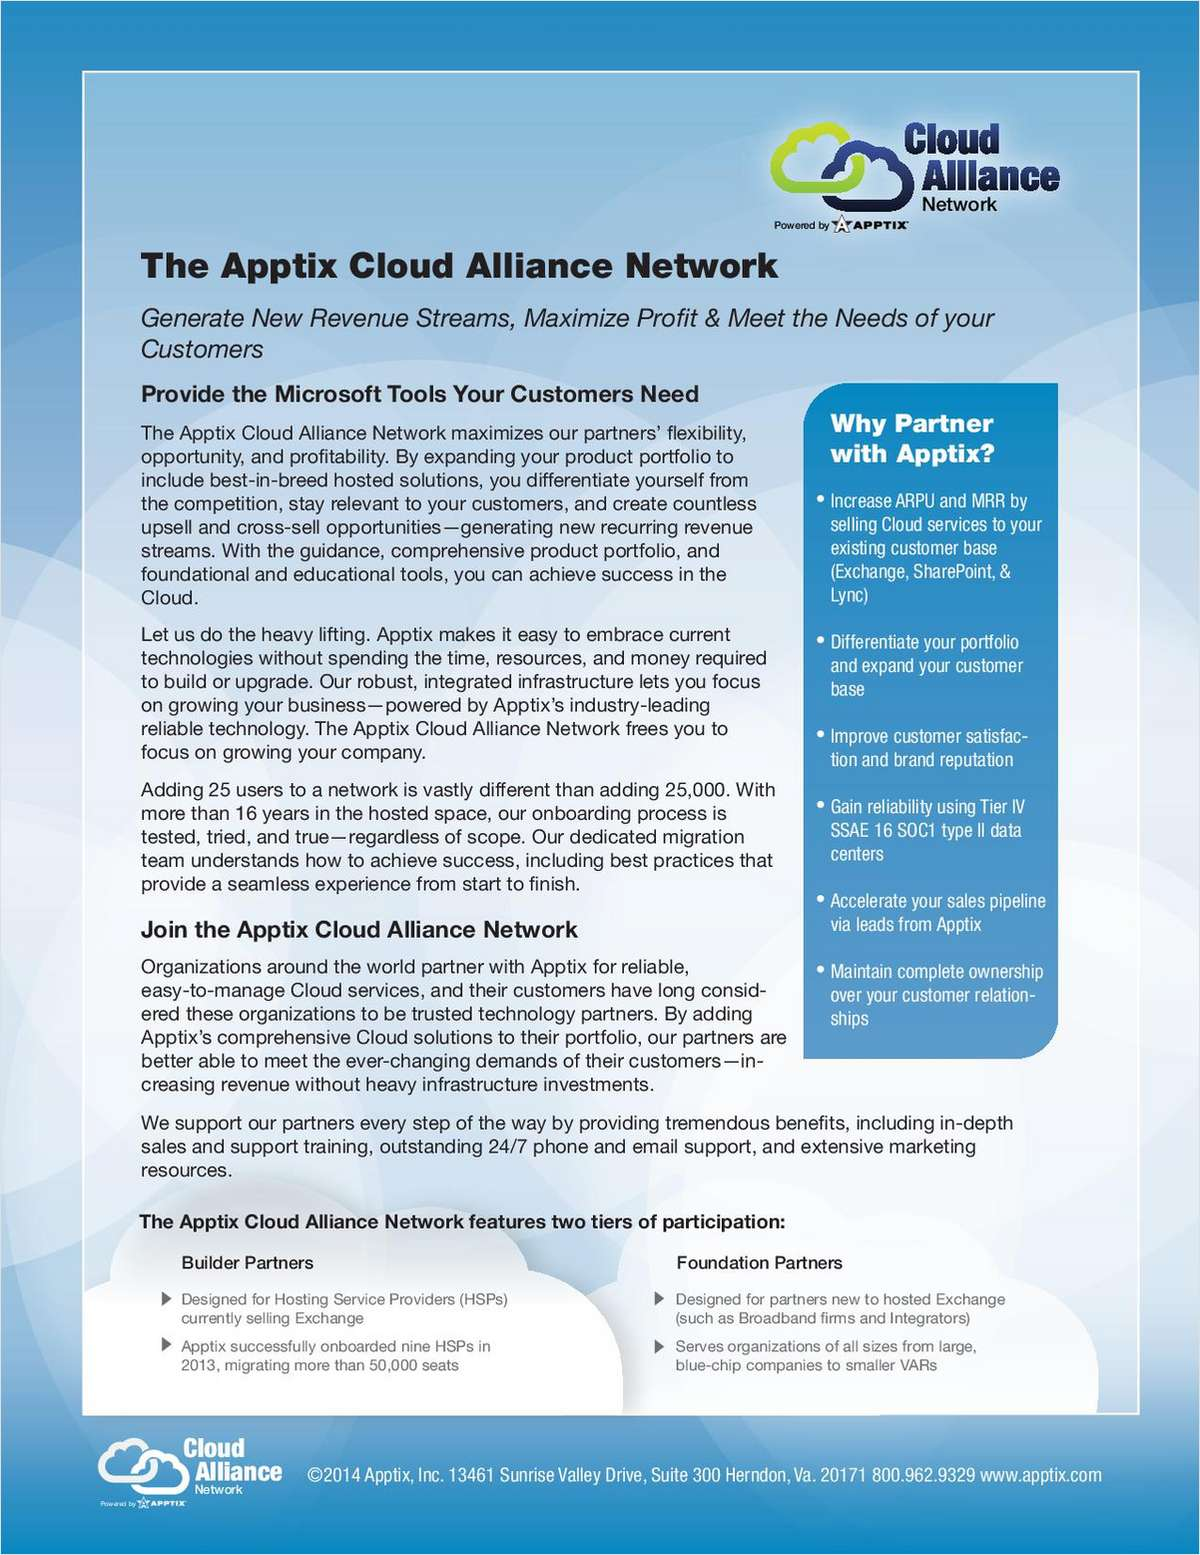 The Apptix Cloud Alliance Network